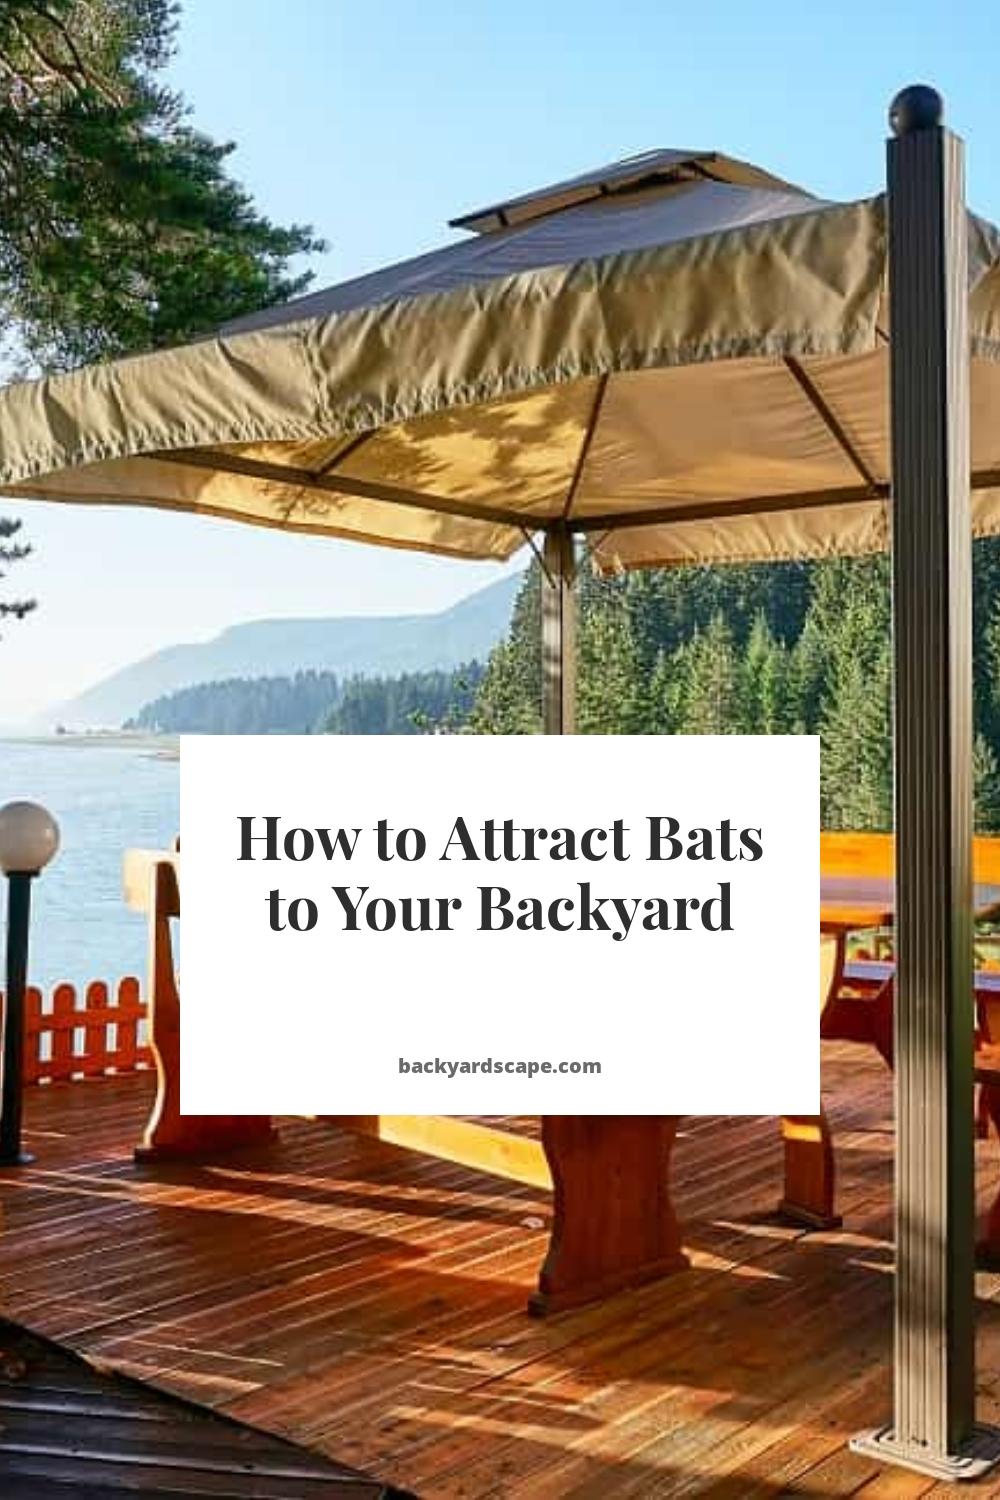 How to Attract Bats to Your Backyard